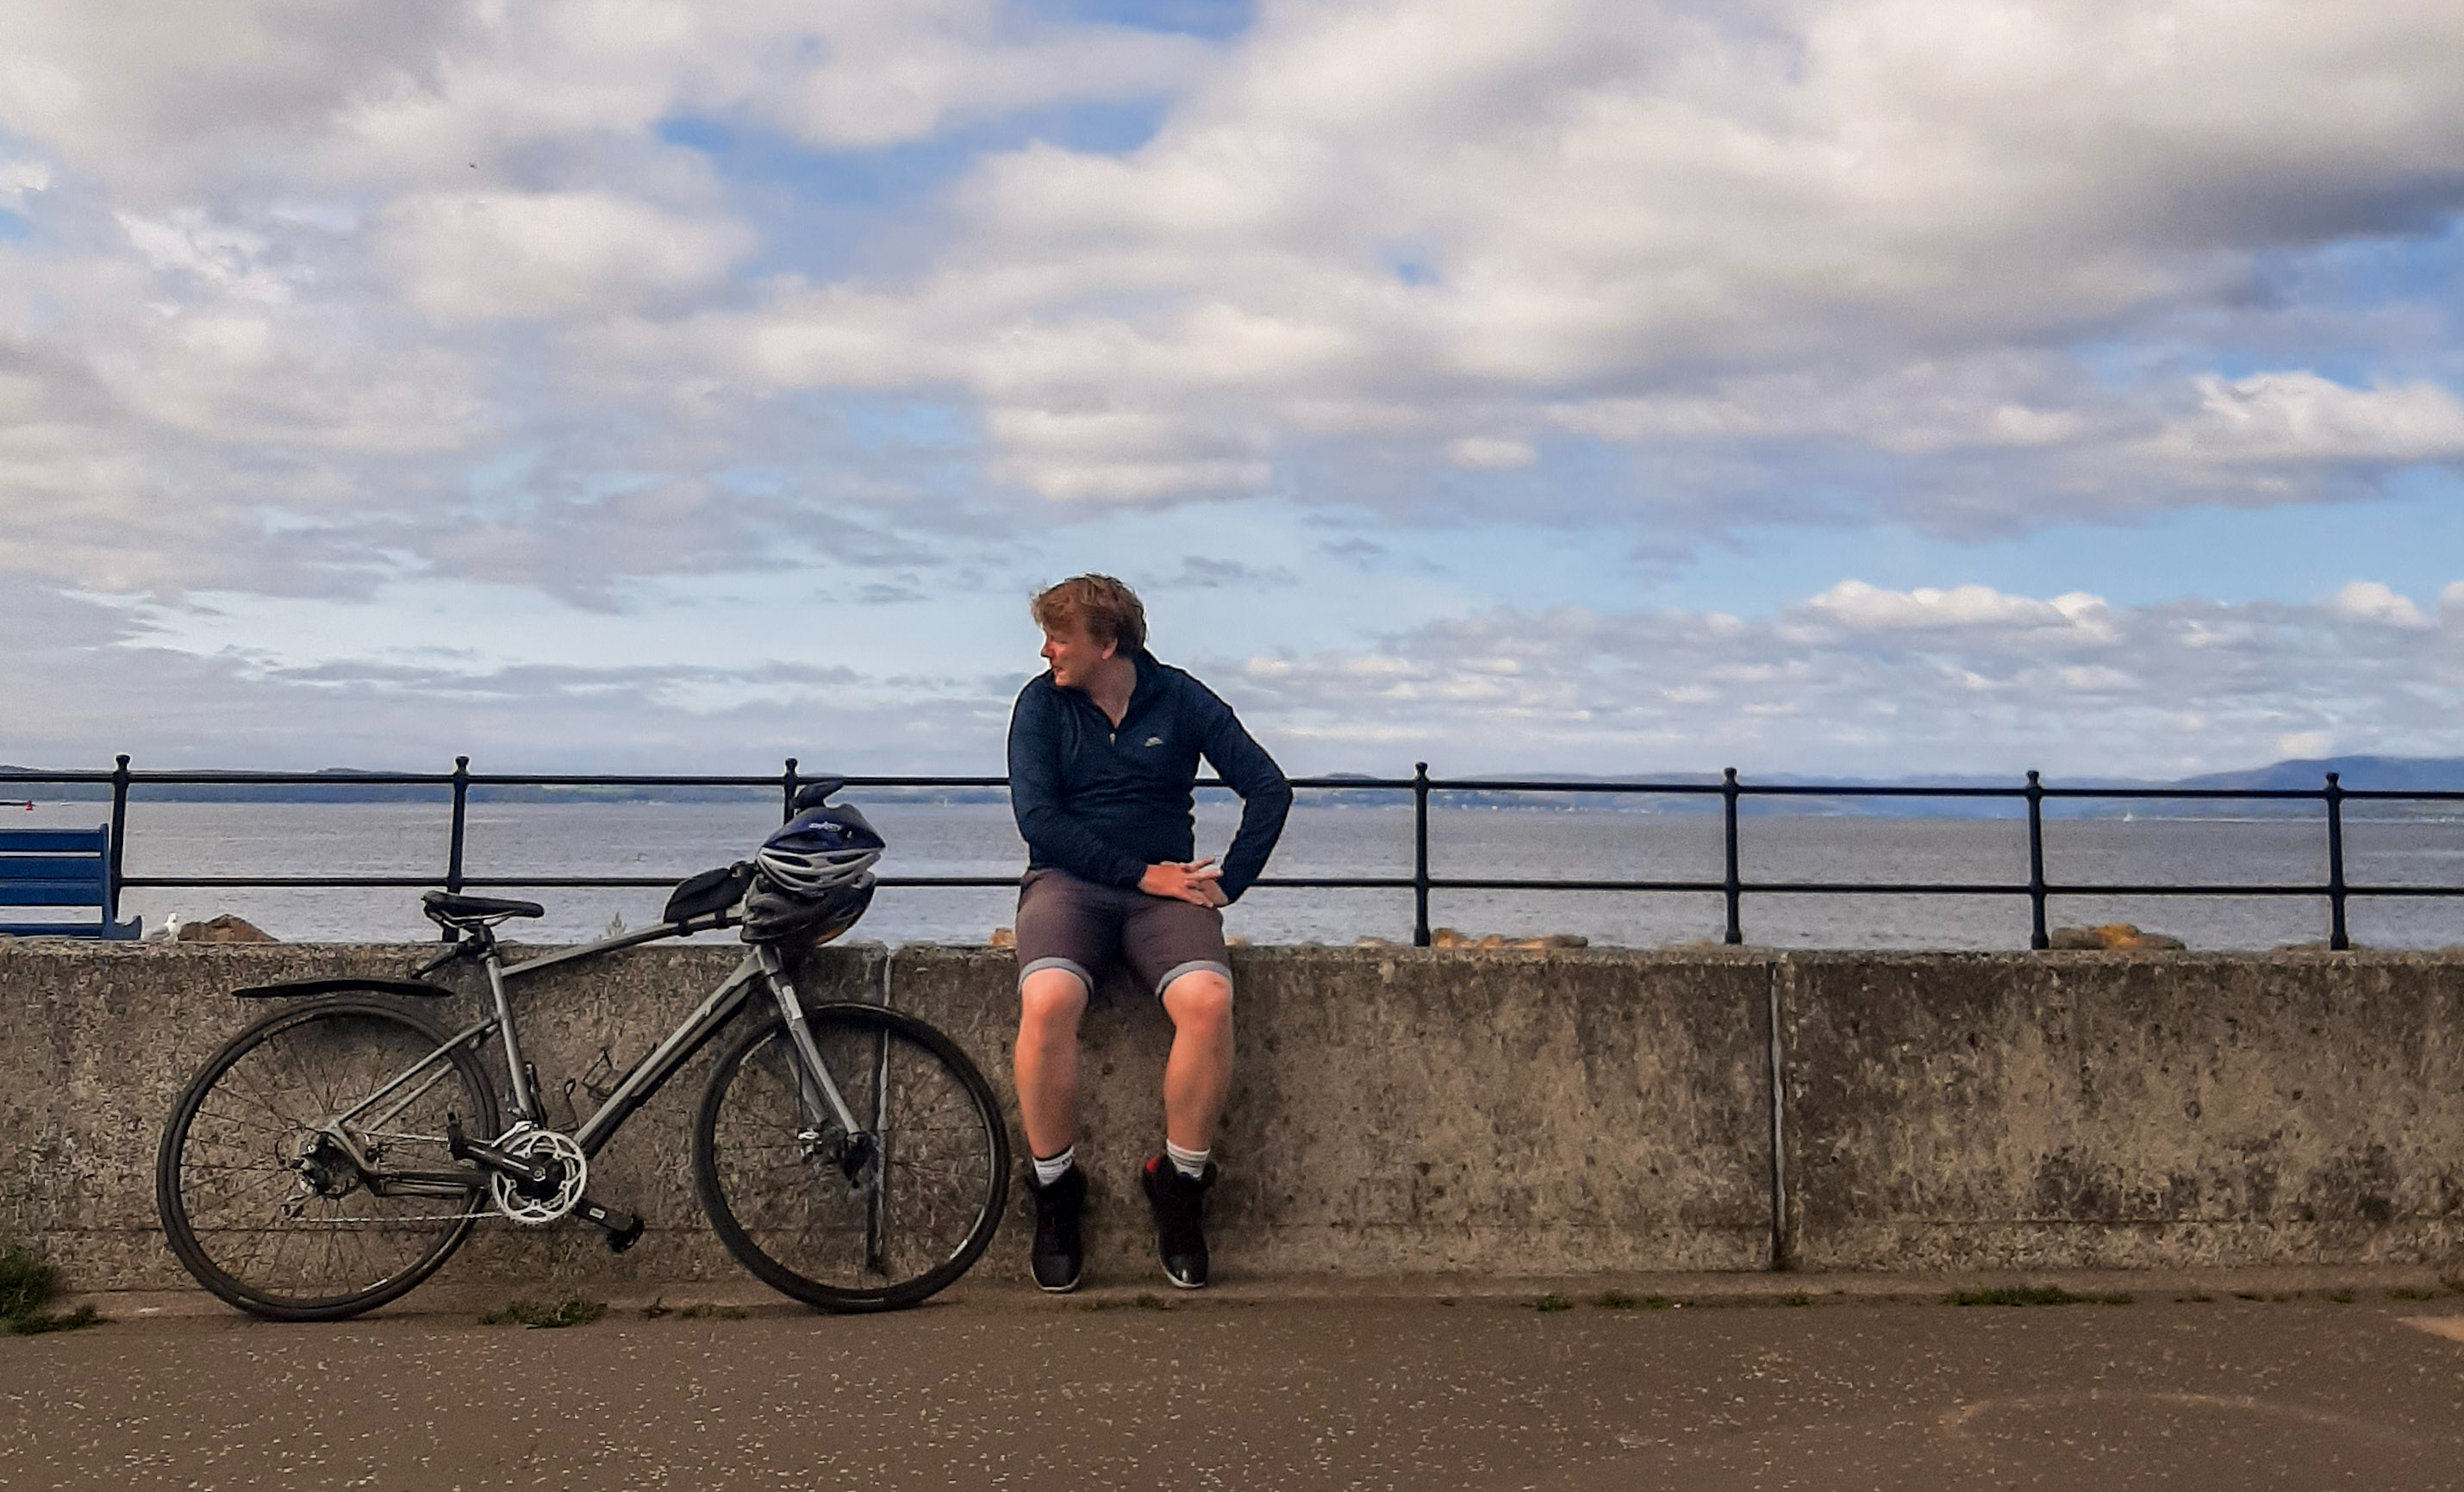 Rory is wearing a dark blbue jacket and shorts, and is sat on a concrete sea wall. To this left is a black bike, and the sea and sky are blue and white behind him.